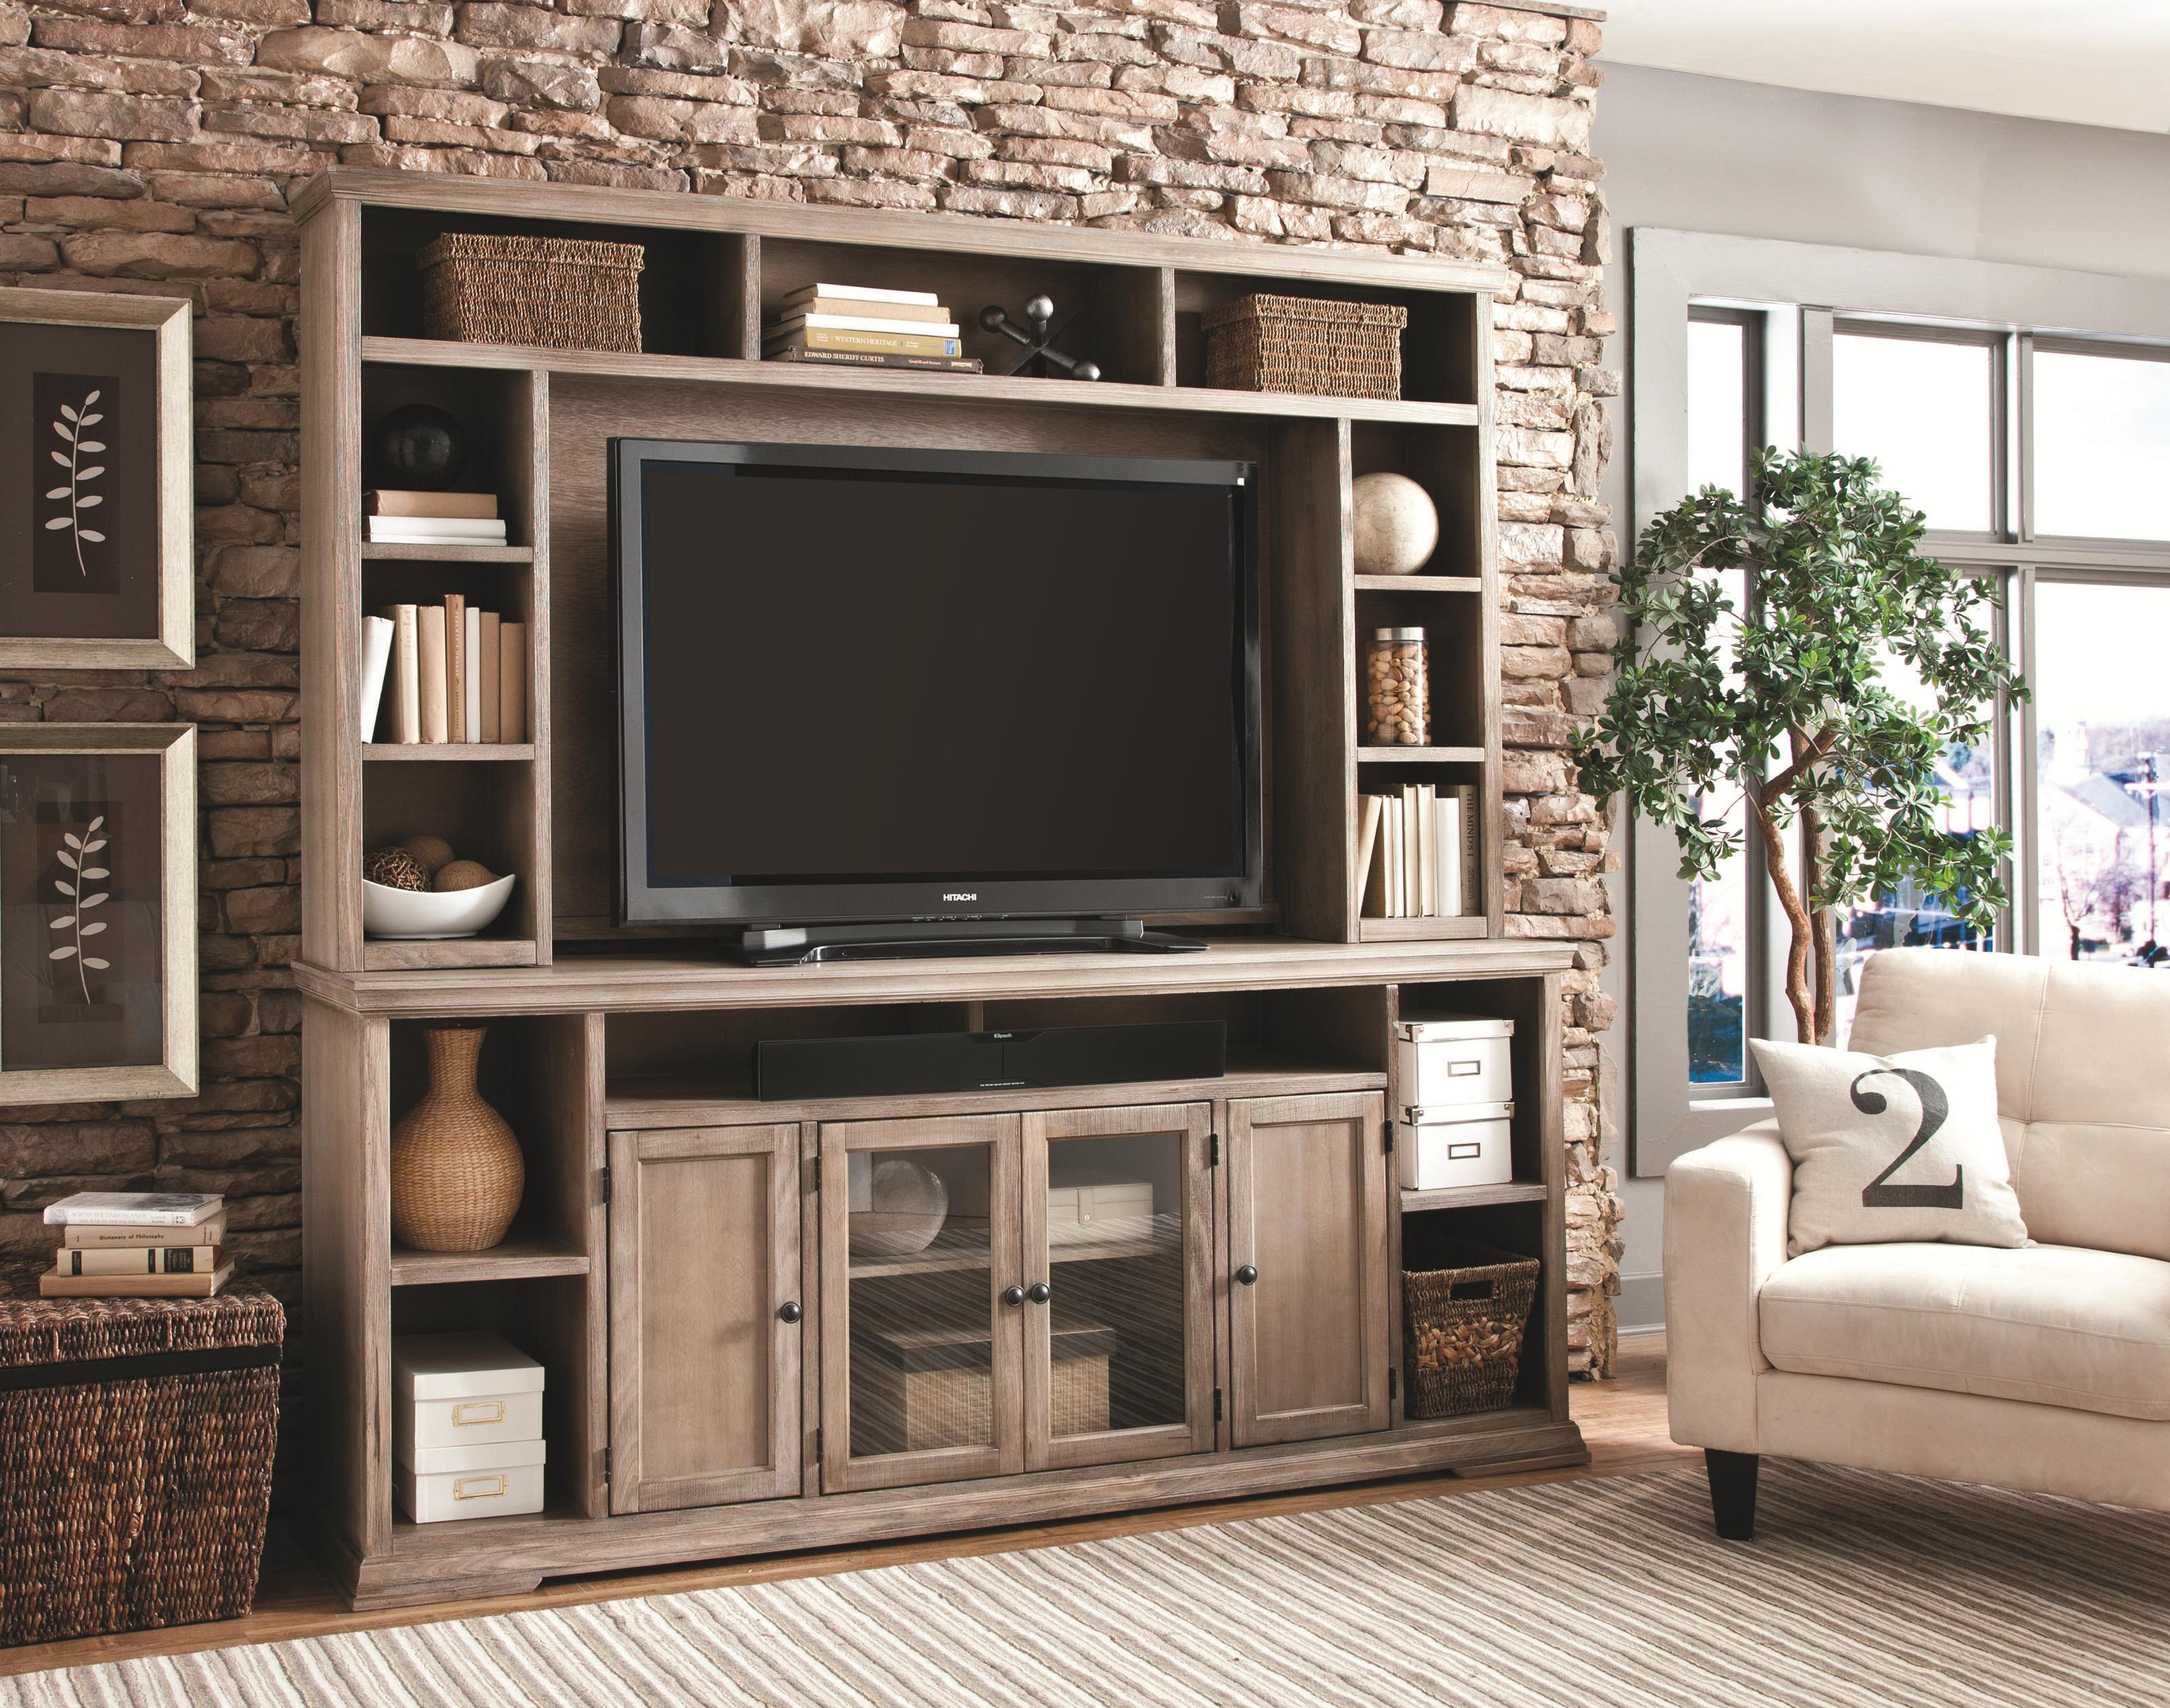 Aspenhome Canyon Creek 60 Inch Bookcase With 3 Fixed Shelves